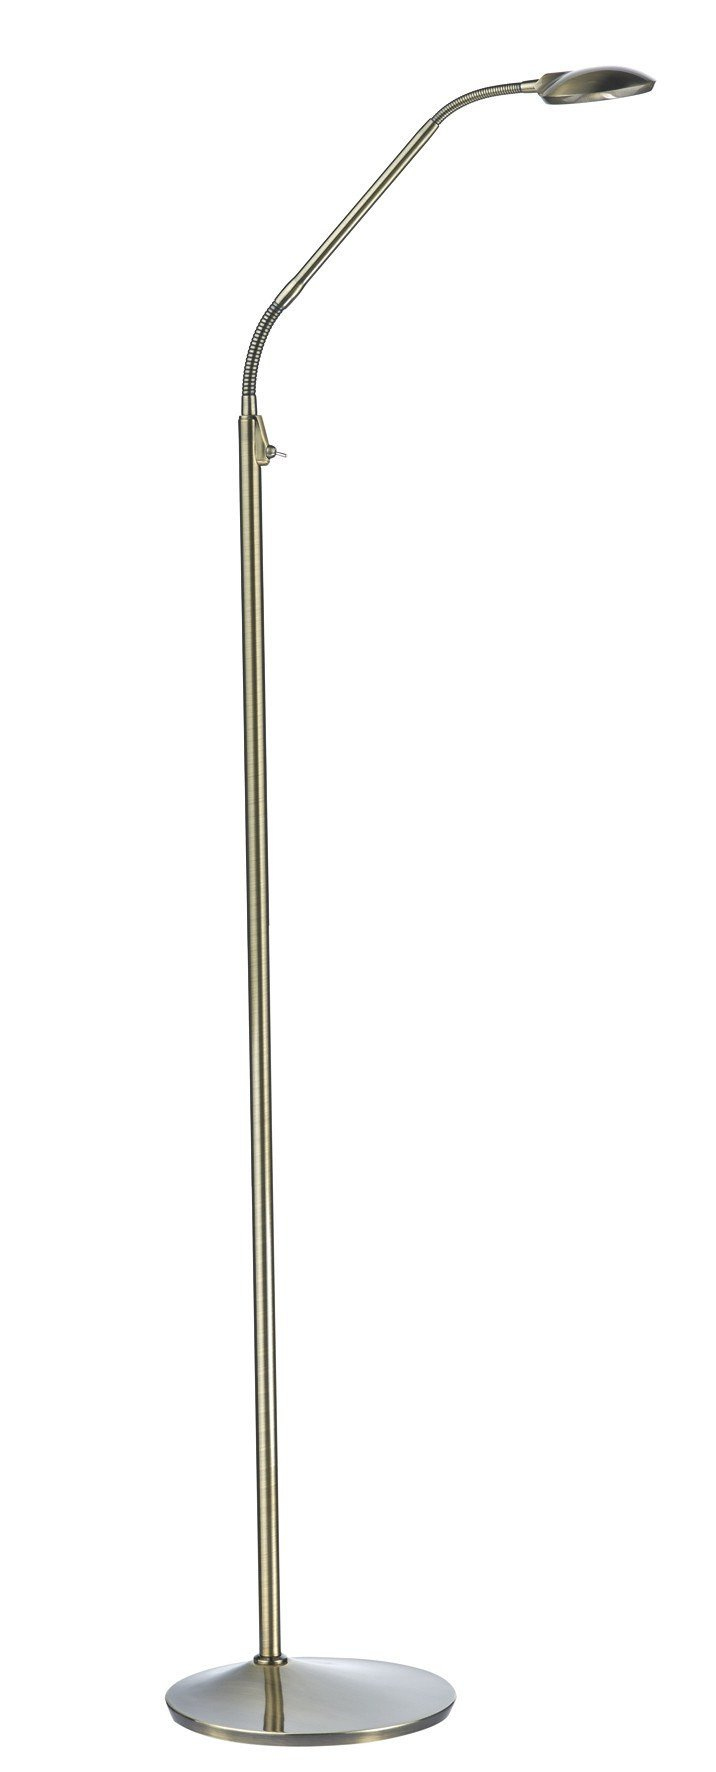 Wellington LED Floor Lamp in Antique Brass - London Lighting - 1